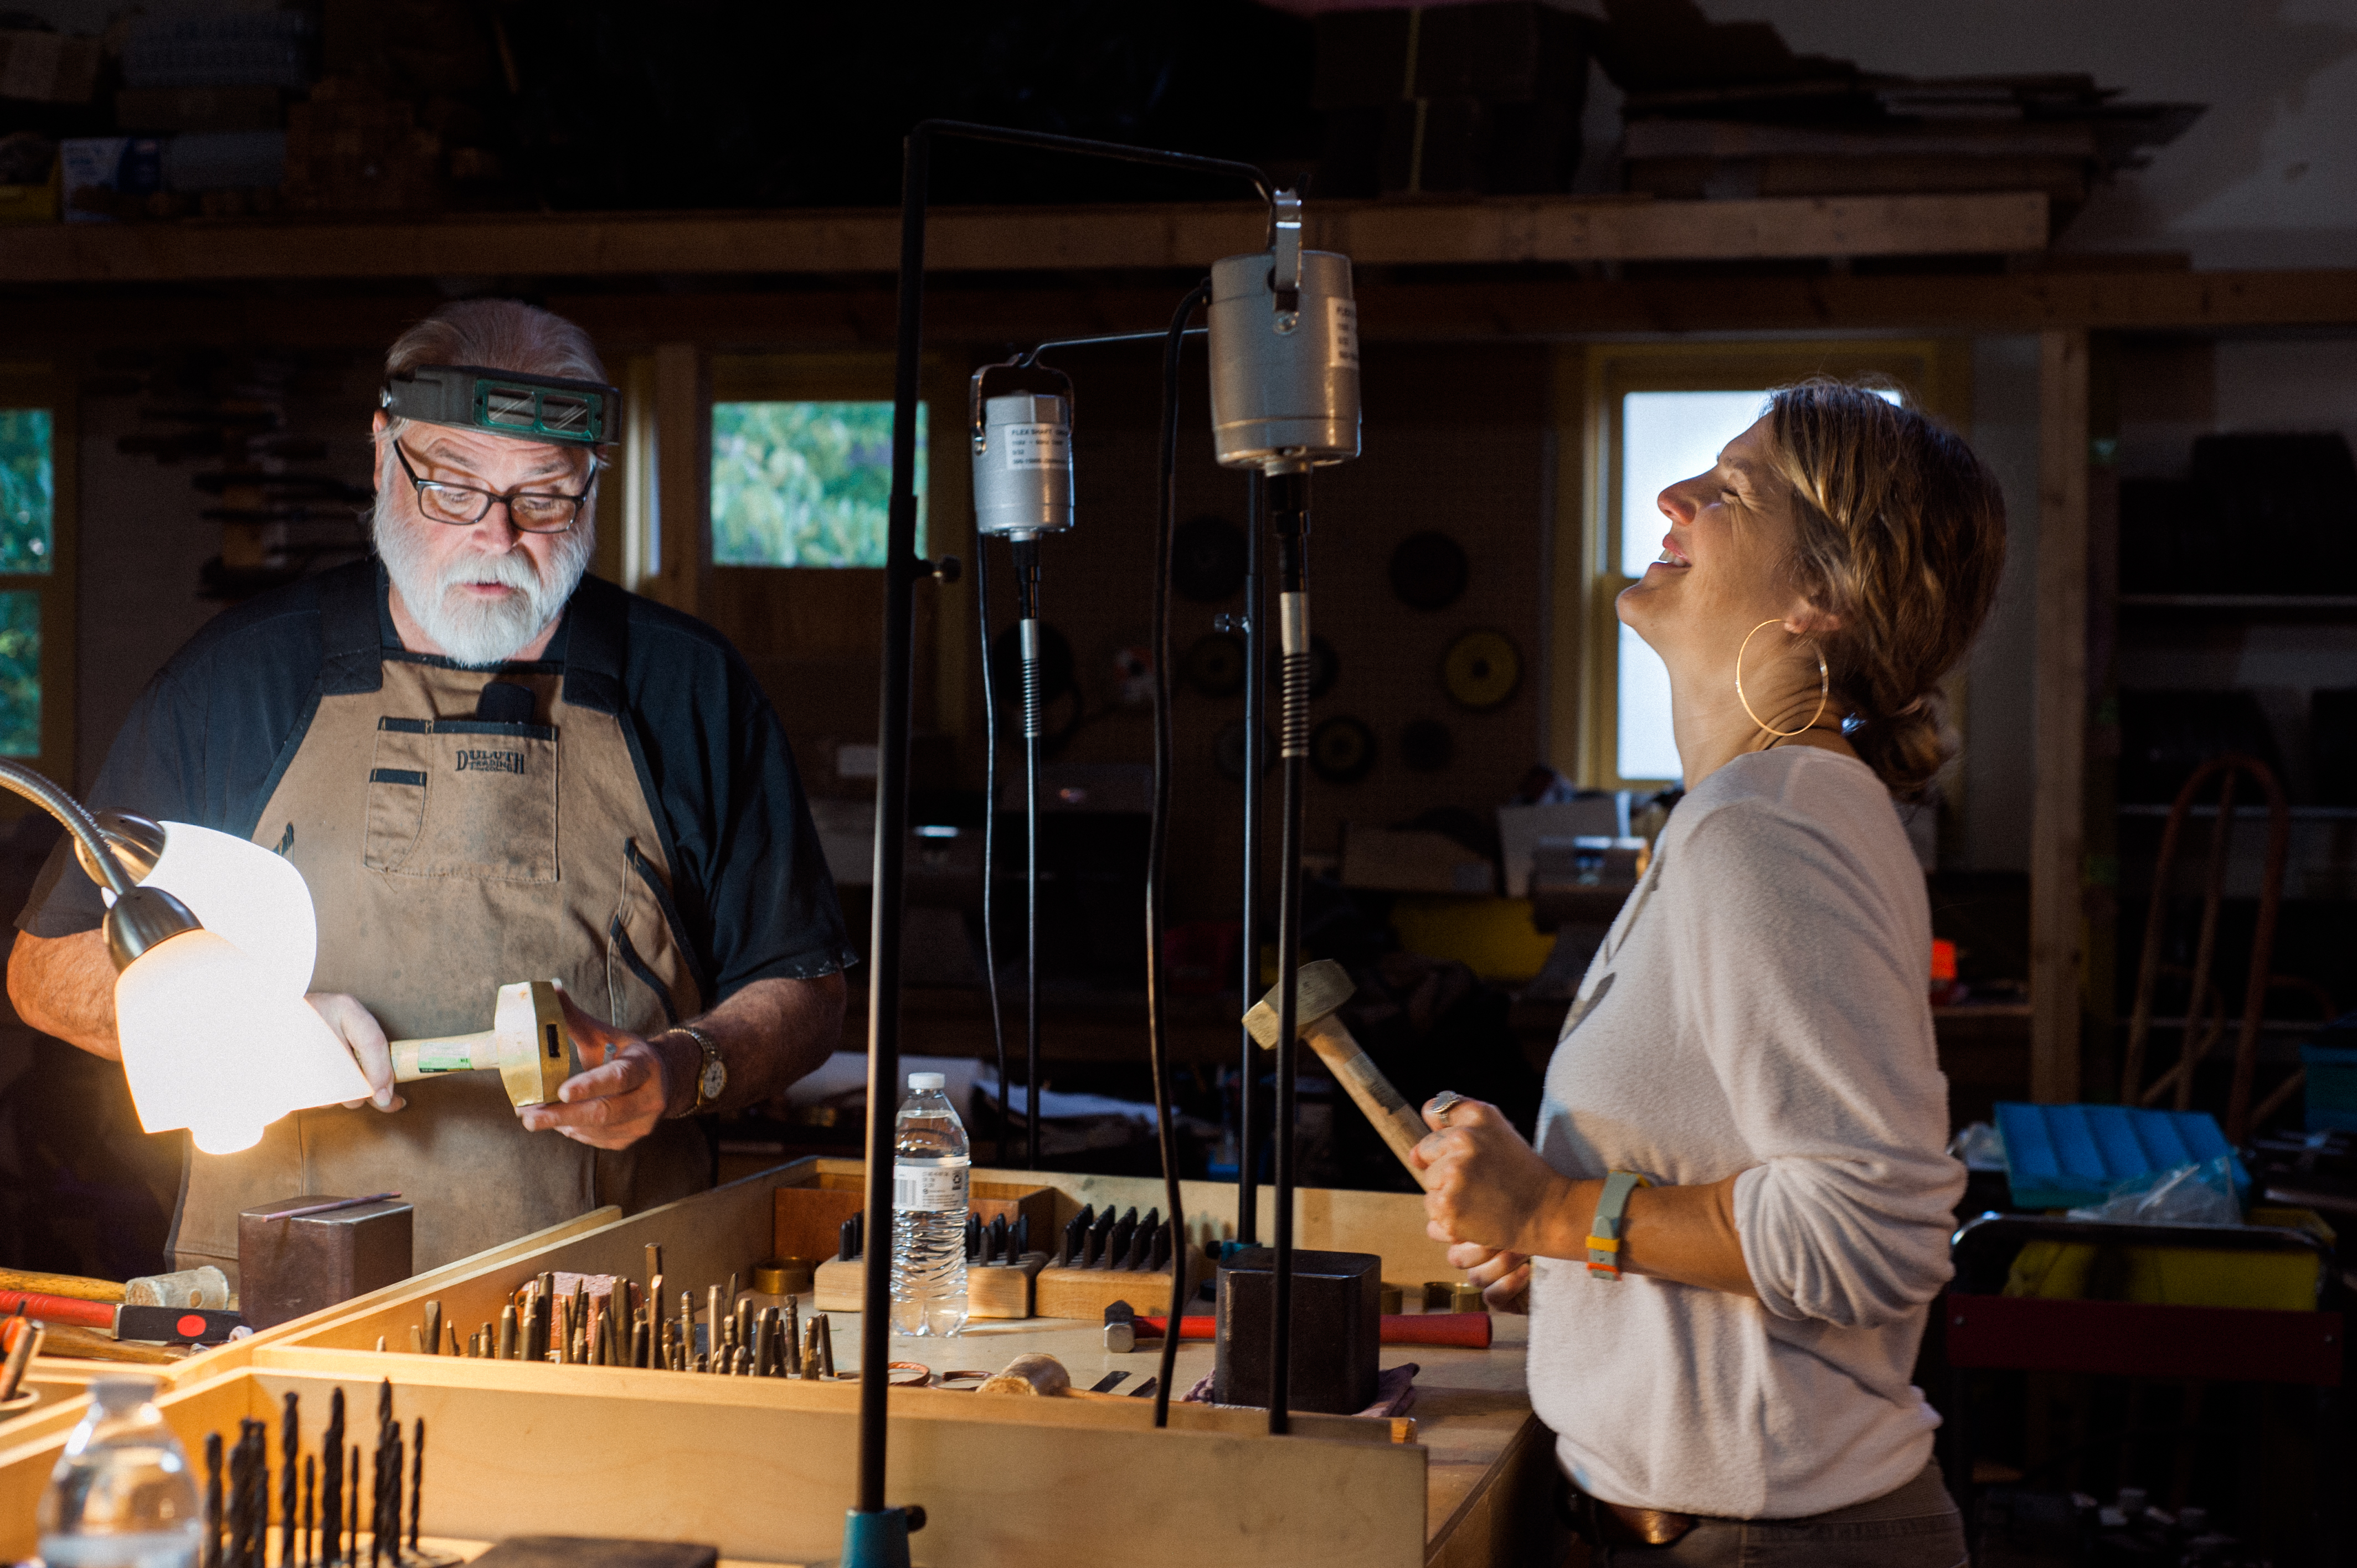 Artists Thrive: Raising the Value of Artists